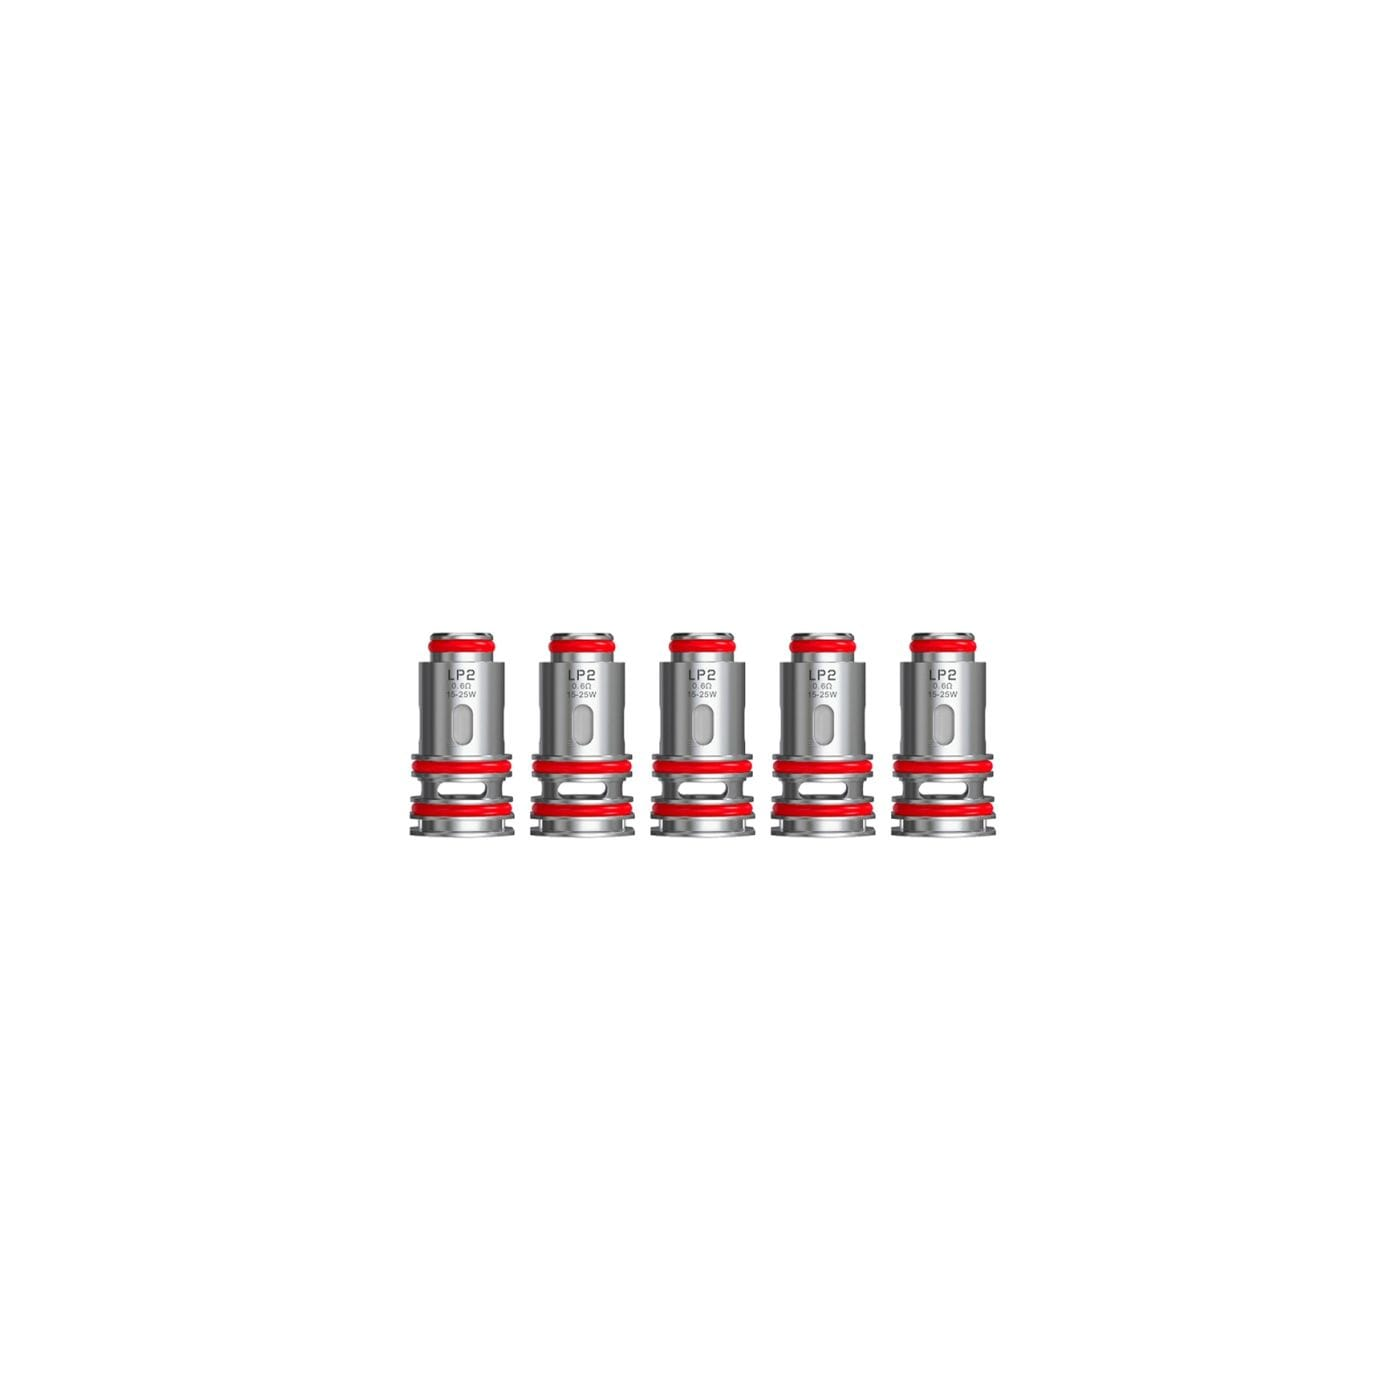 Smok LP2 Replacement Coil - 5 Pack